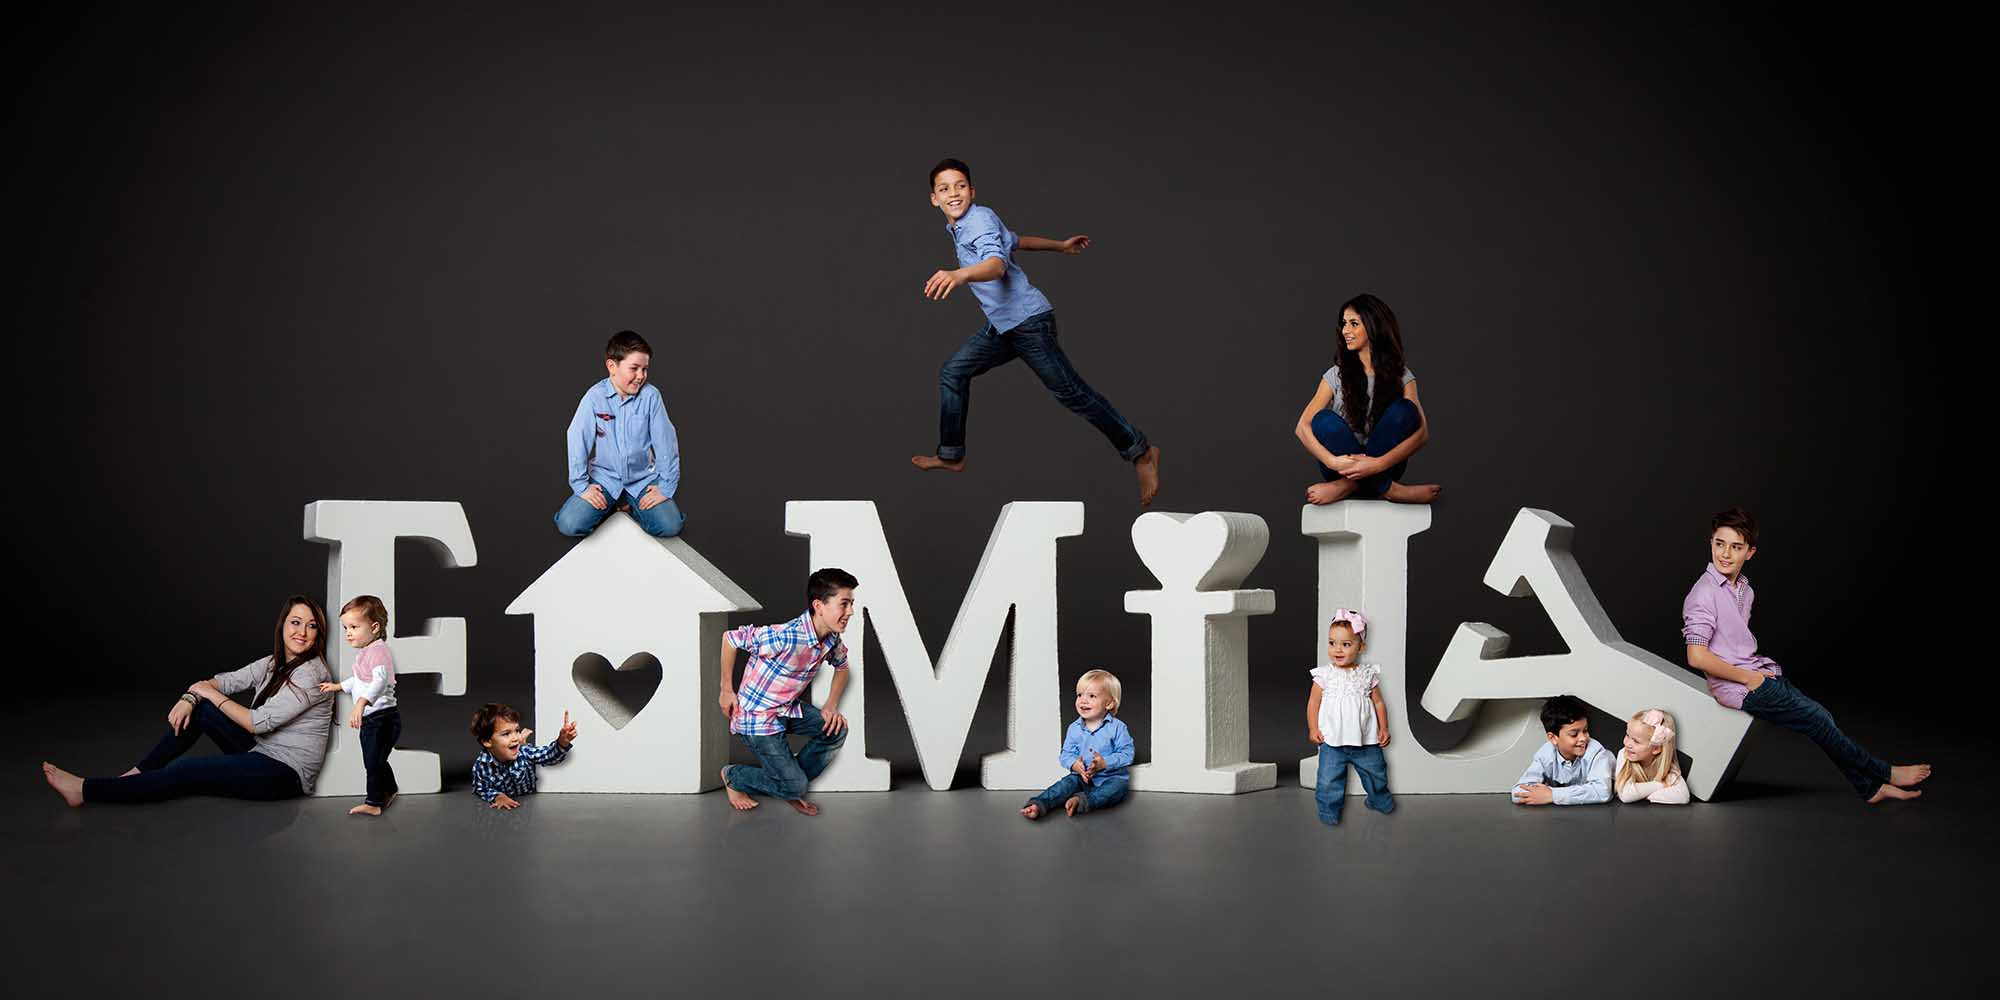 Creative Family Portrait with Children jumping and gathering around large letters that spell family.